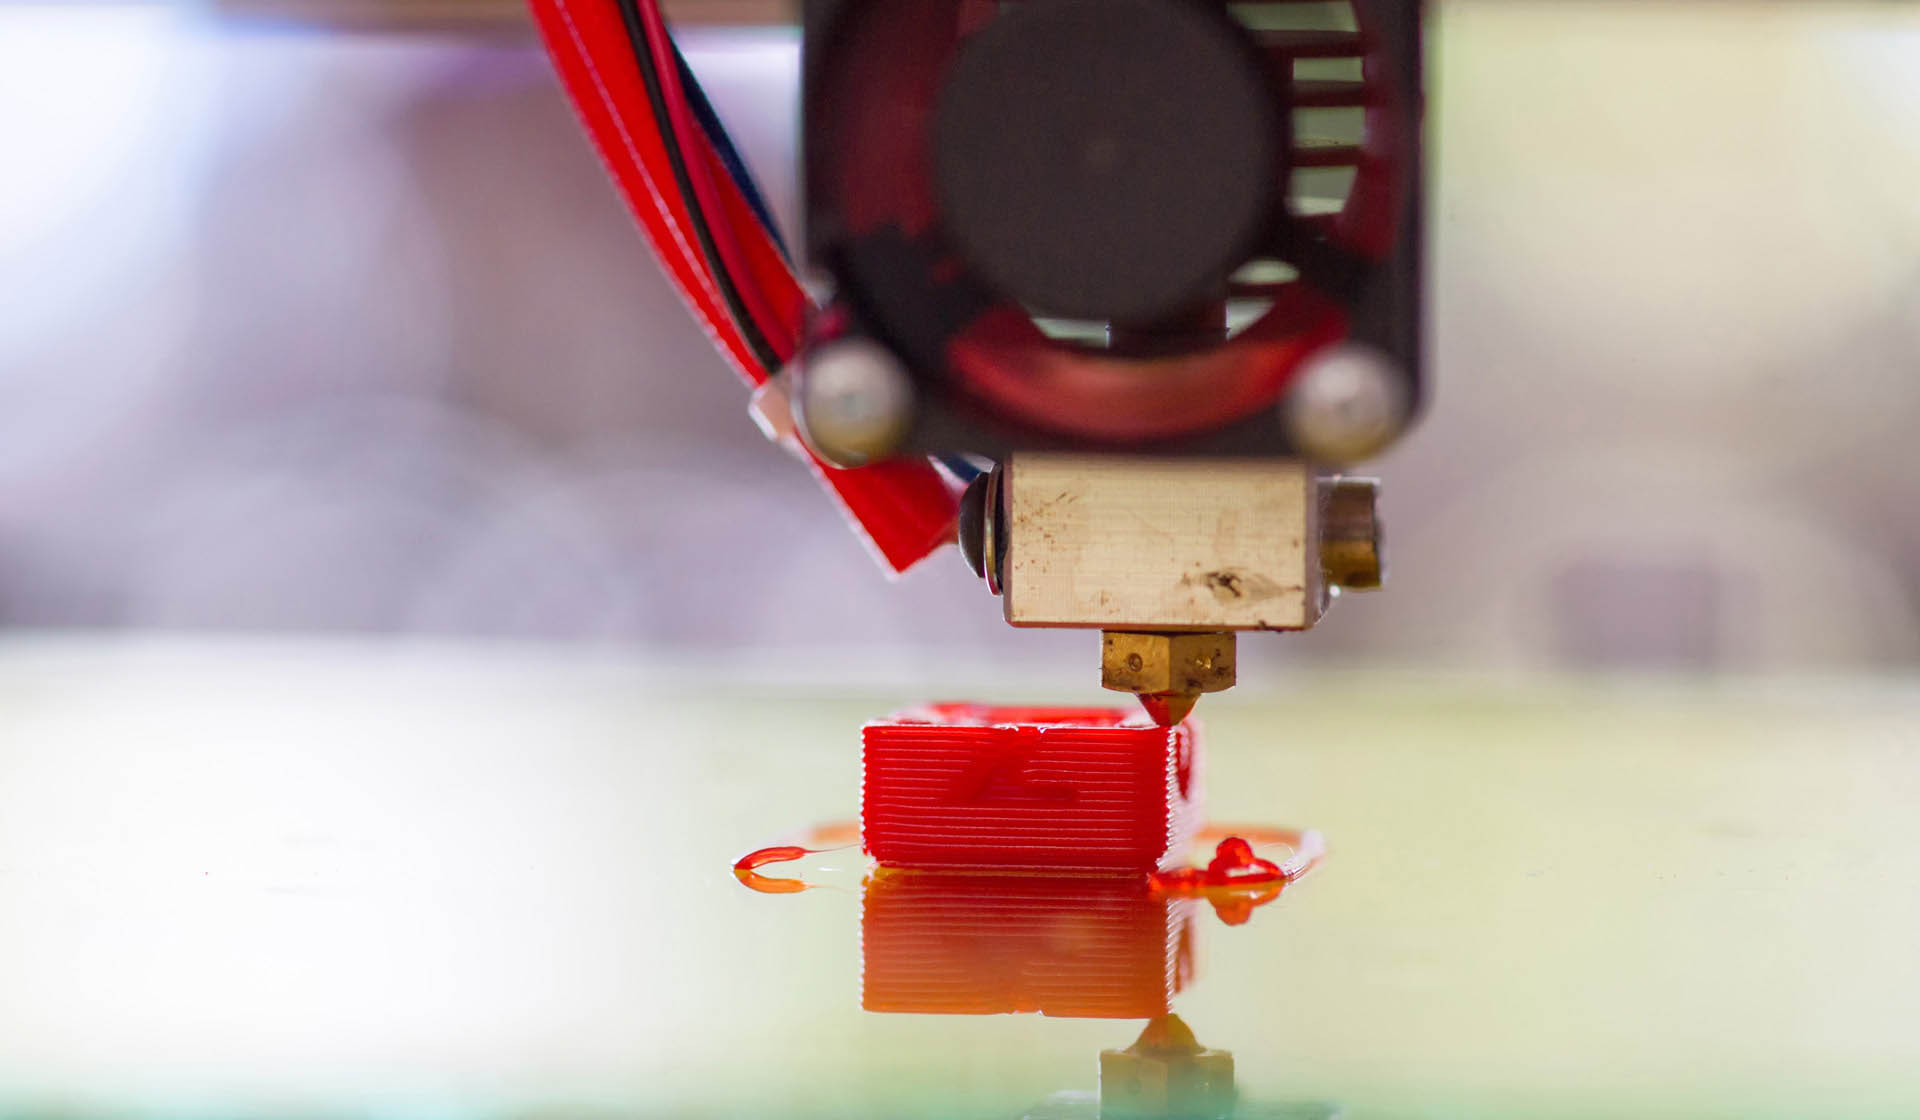 A 3D printer creates a small red part that will be used in the manufacturing of farming equipment.